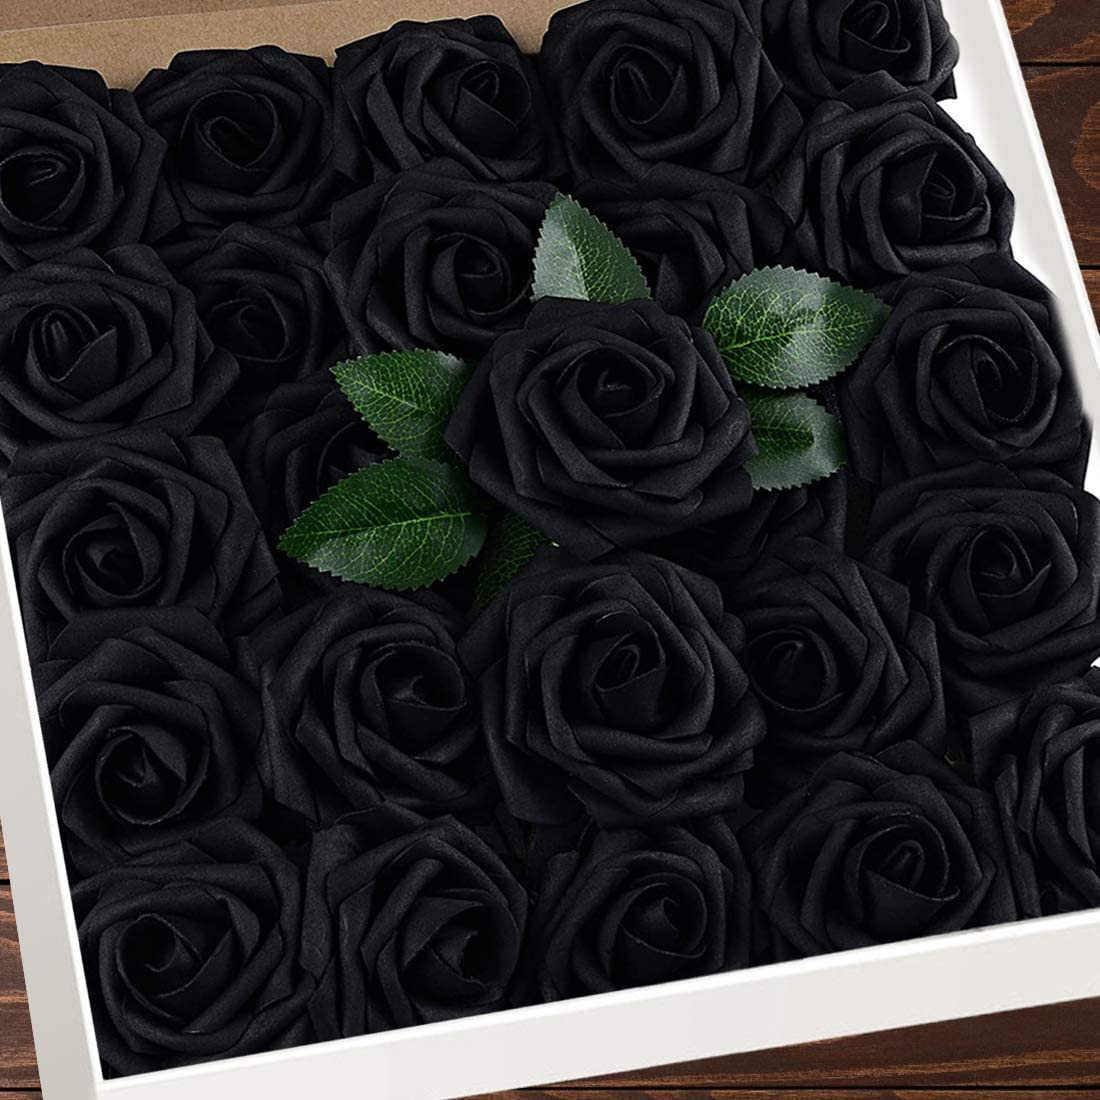 Higfra Artificial Flowers Black Roses W/Stem, Rustic Farmhouse Decor for Home Wedding Kitchen and Office Ideal Bridal Shower Party Home Decorations 25pcs